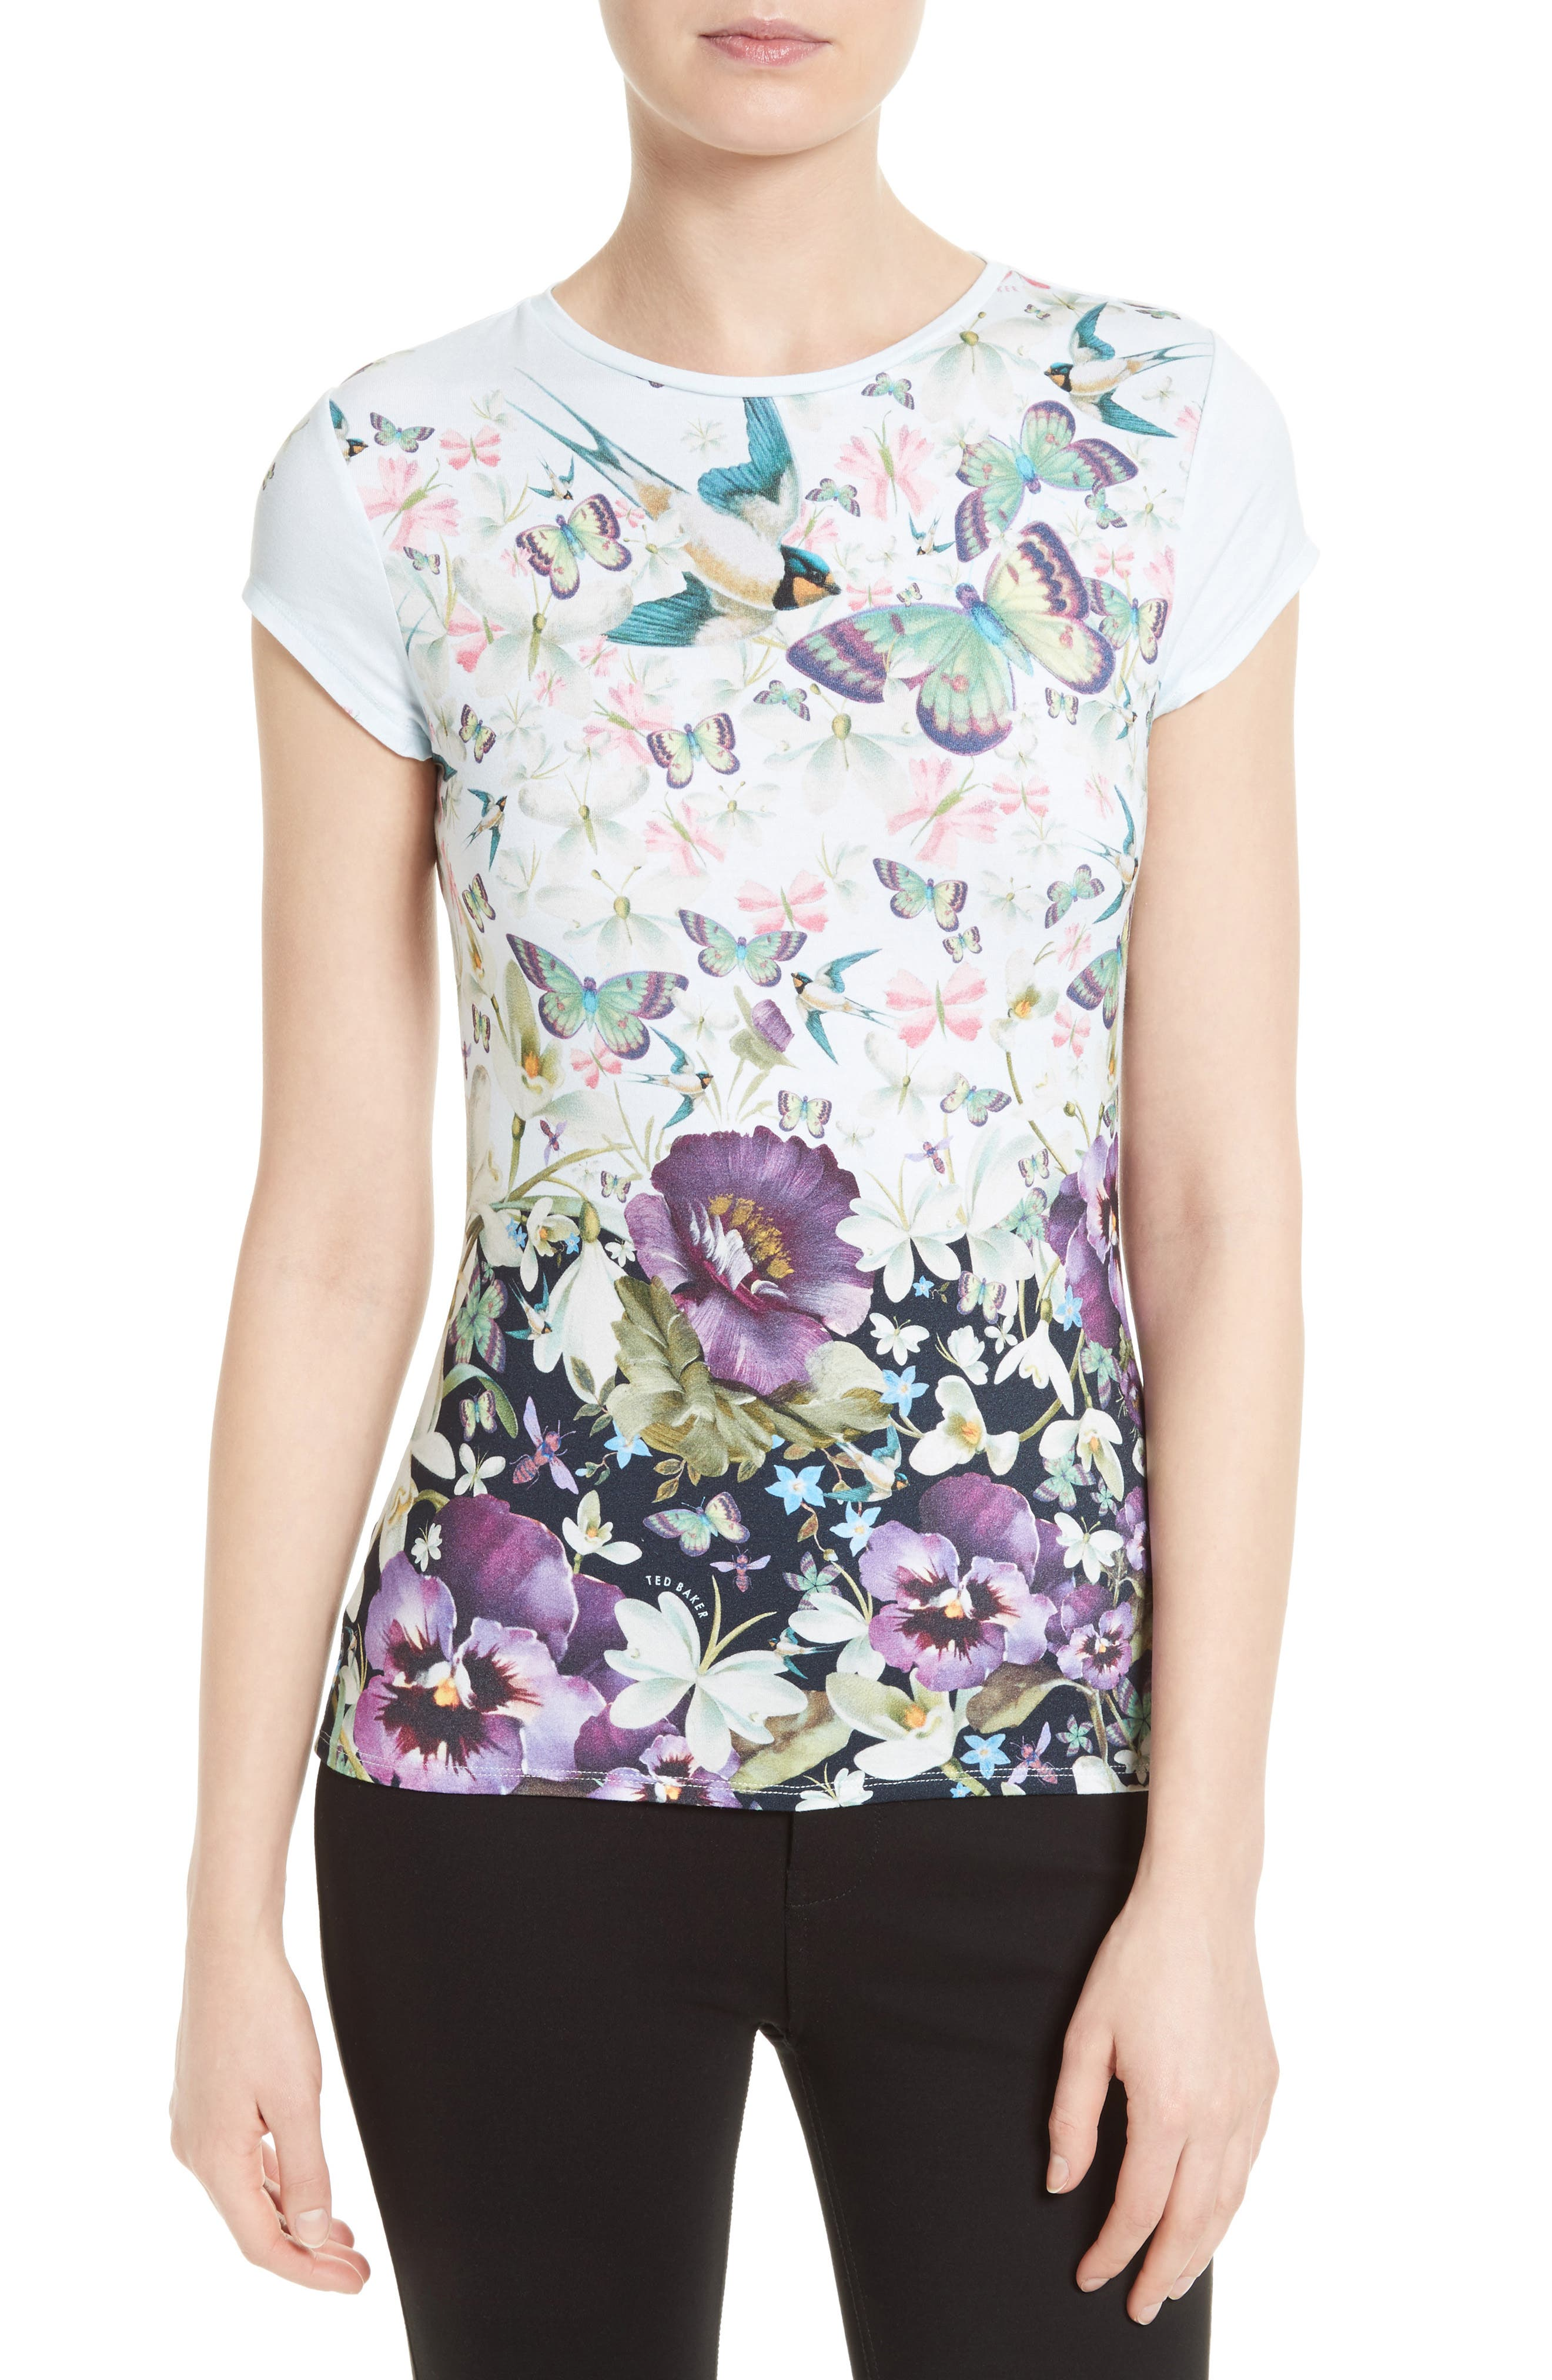 TED BAKER LONDON Jensen Floral Print Tee